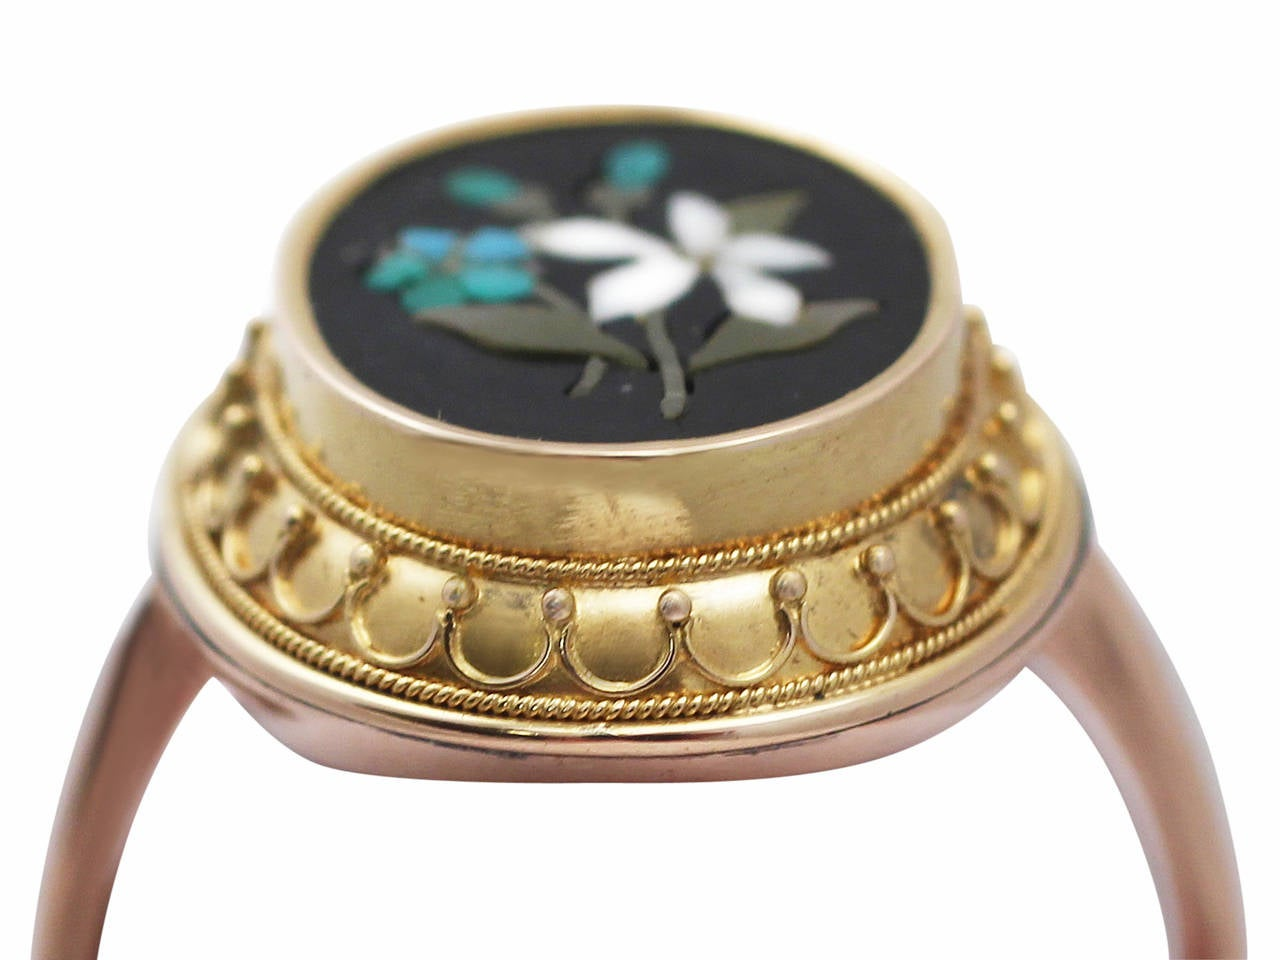 pietra dura 9 ct gold and 18 ct yellow gold dress